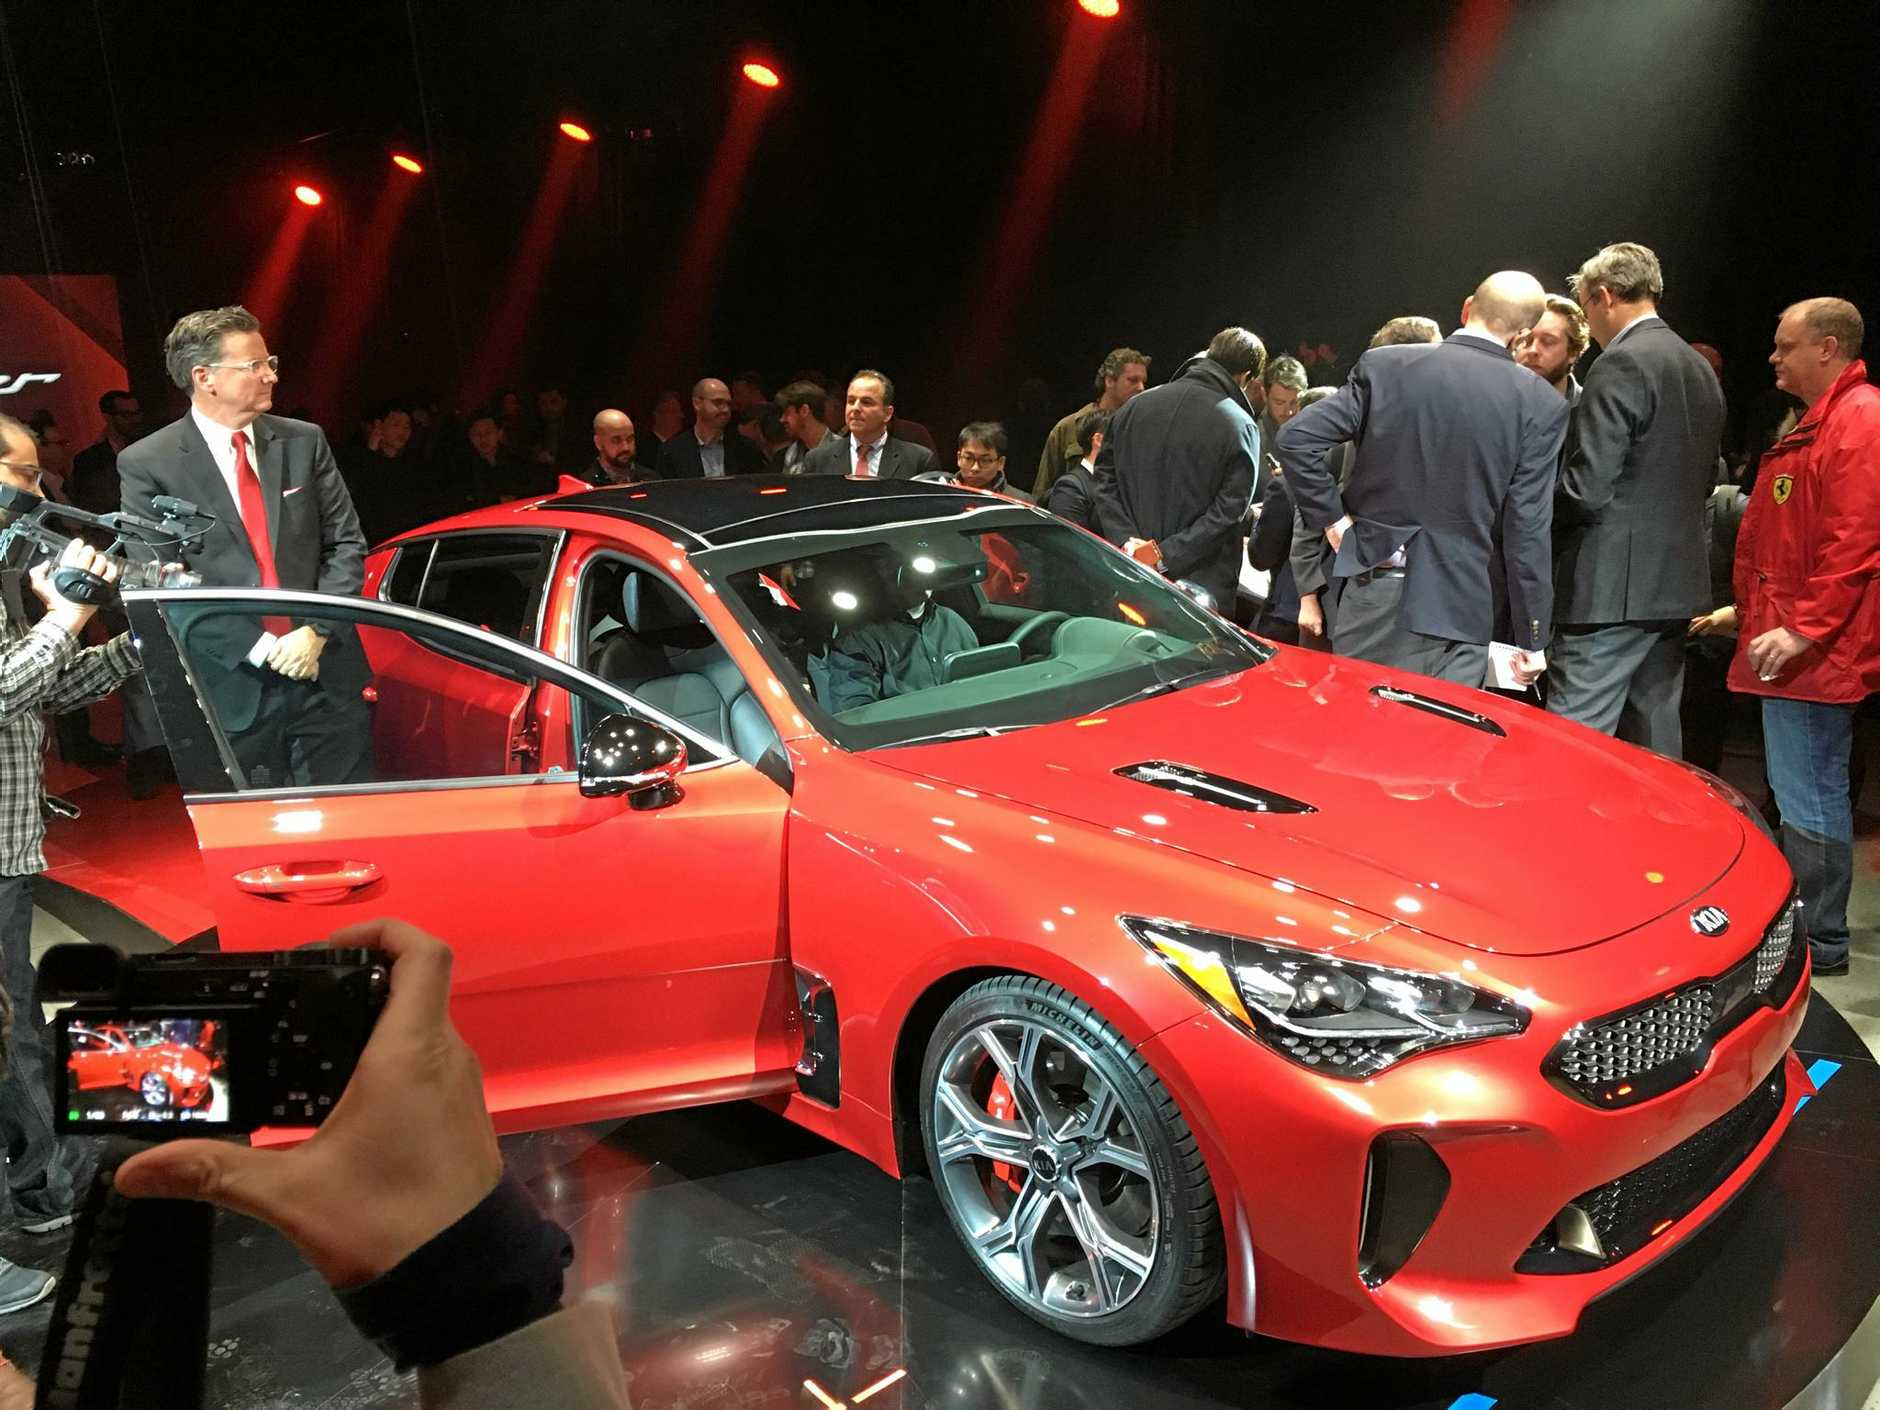 The 2018 Kia Stinger GT is unveiled to the world ahead of the Detroit motor show.